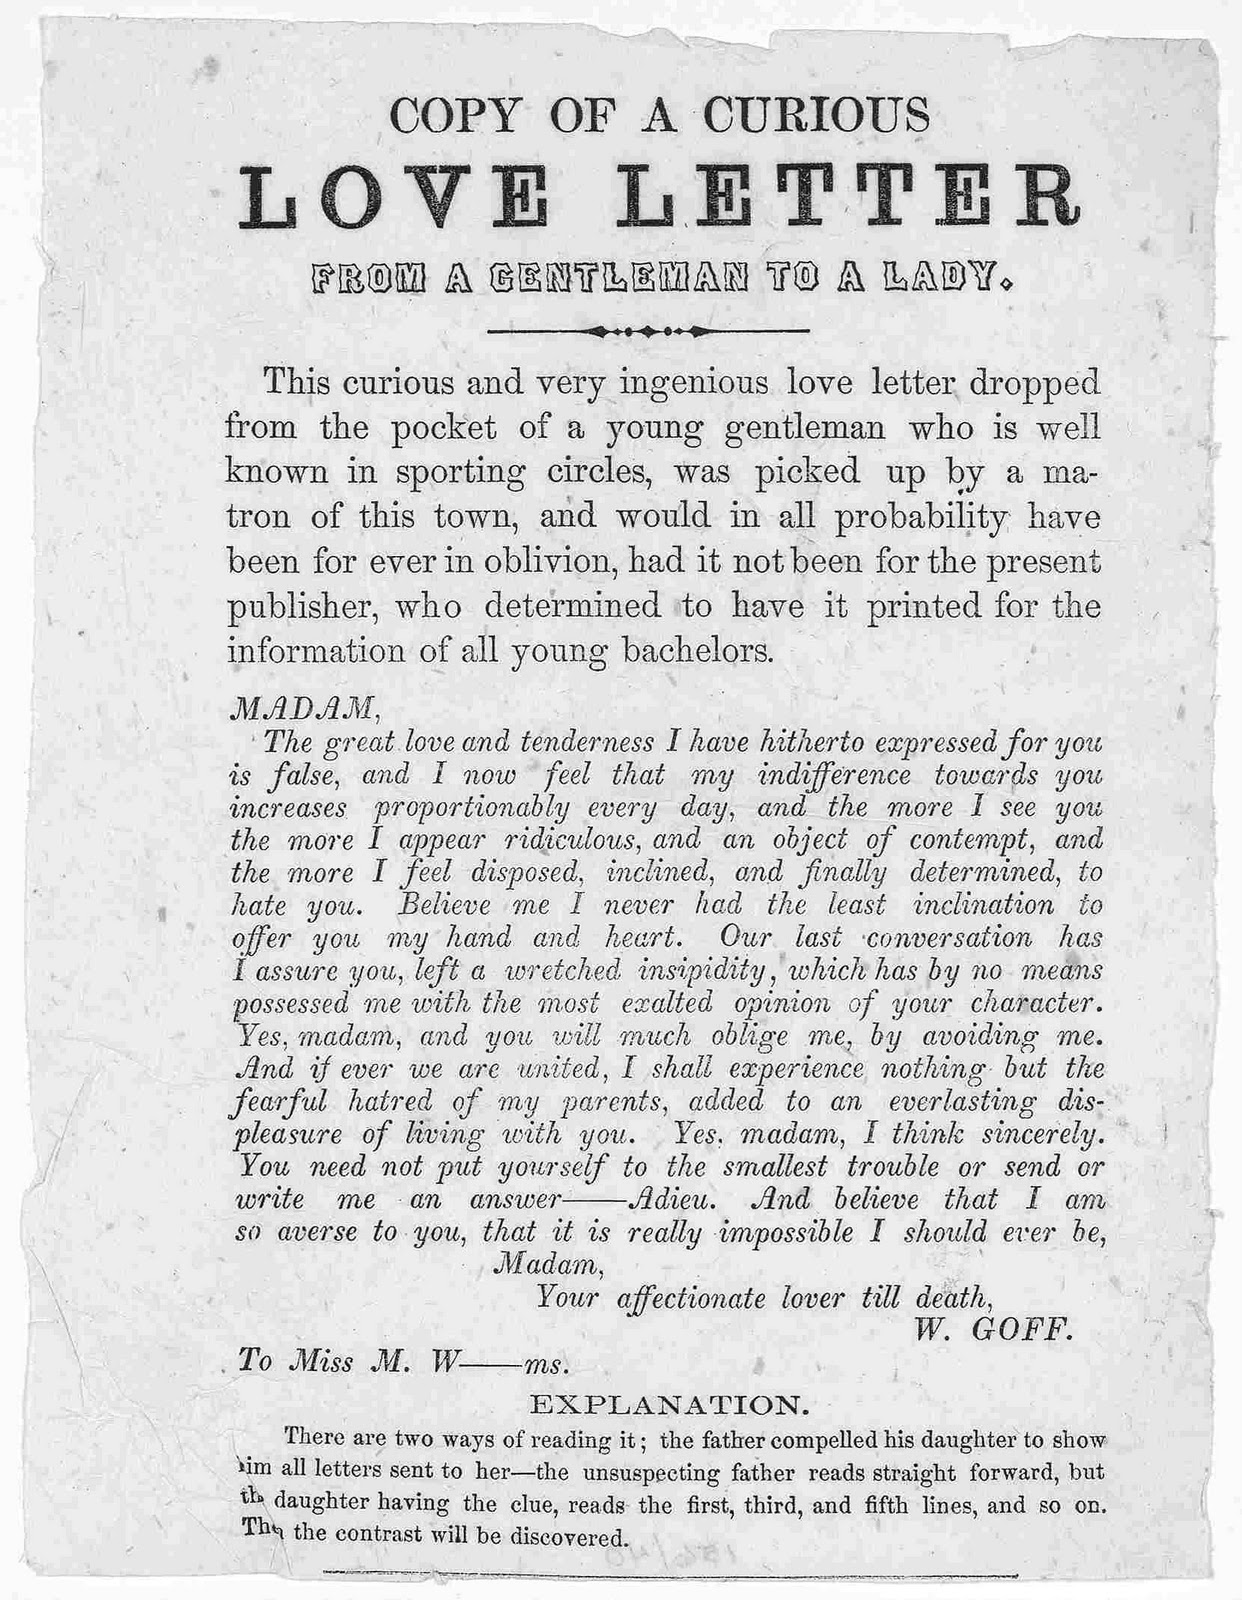 riddle of a curious love letter